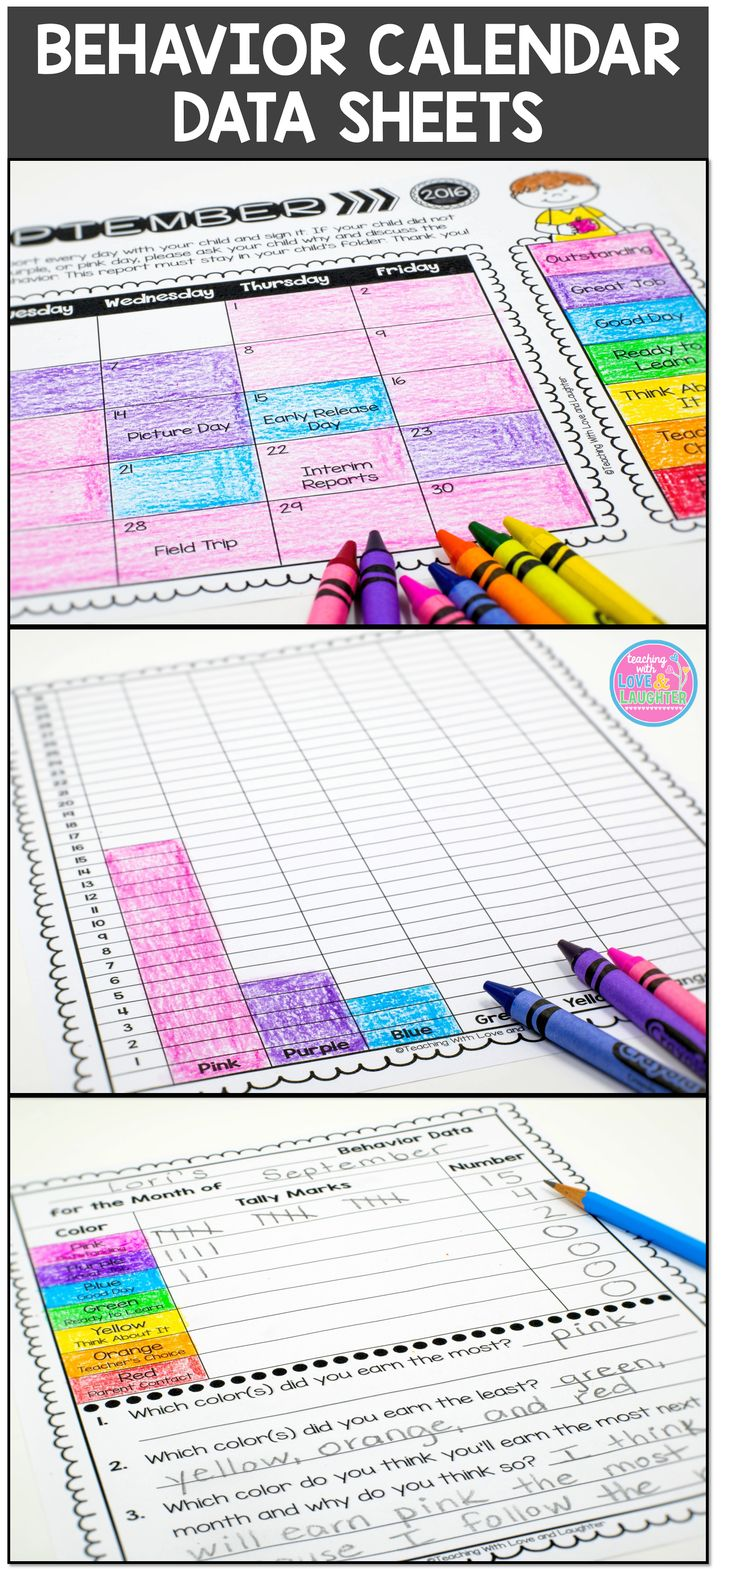 These data sheets are for teachers who use a clip chart and clip chart calendars to manage classroom behavior. They will give your students the opportunity to analyze and reflect on their classroom behavior.  At the end of each month, students can use their behavior calendars to color in the bar graph to represent the colors on their calendar. Once they have colored in their bar graph, they can analyze their data, using one of the 6 response sheets.